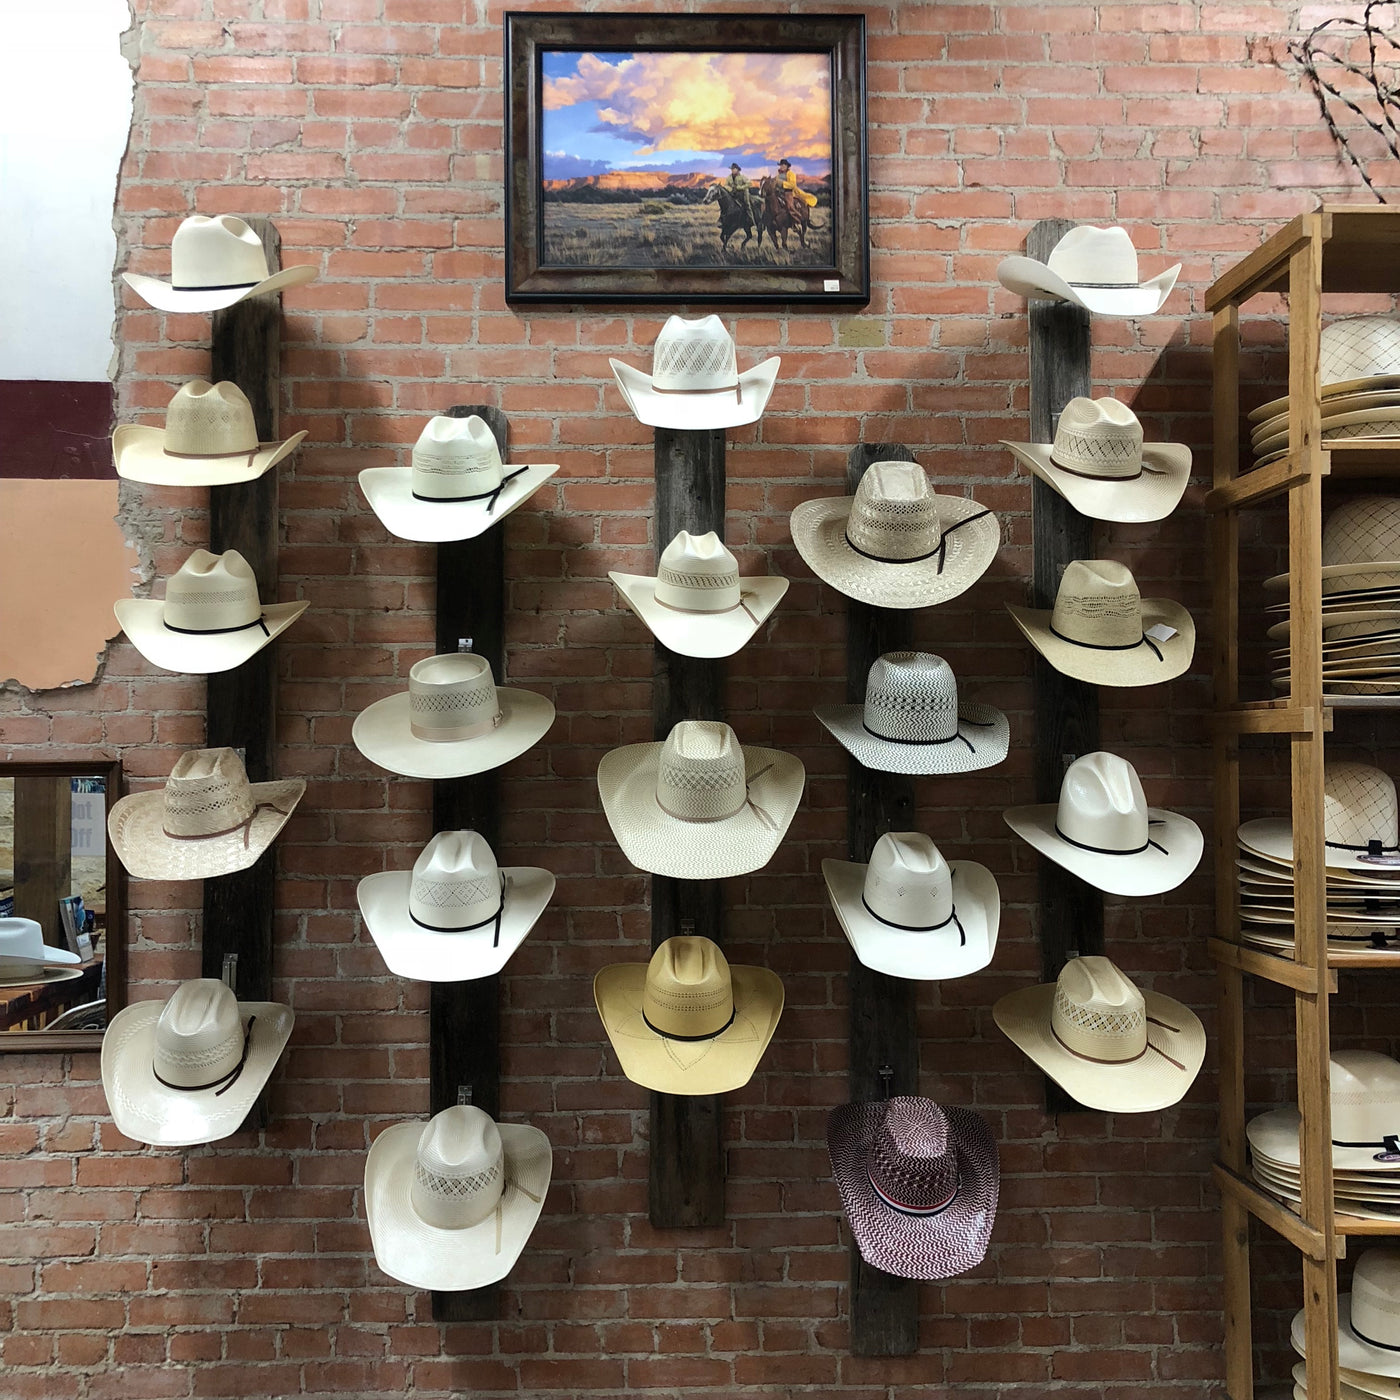 Catalena Hatters - Custom Felt Hats, Straw Hats, Felt Hat Restoration